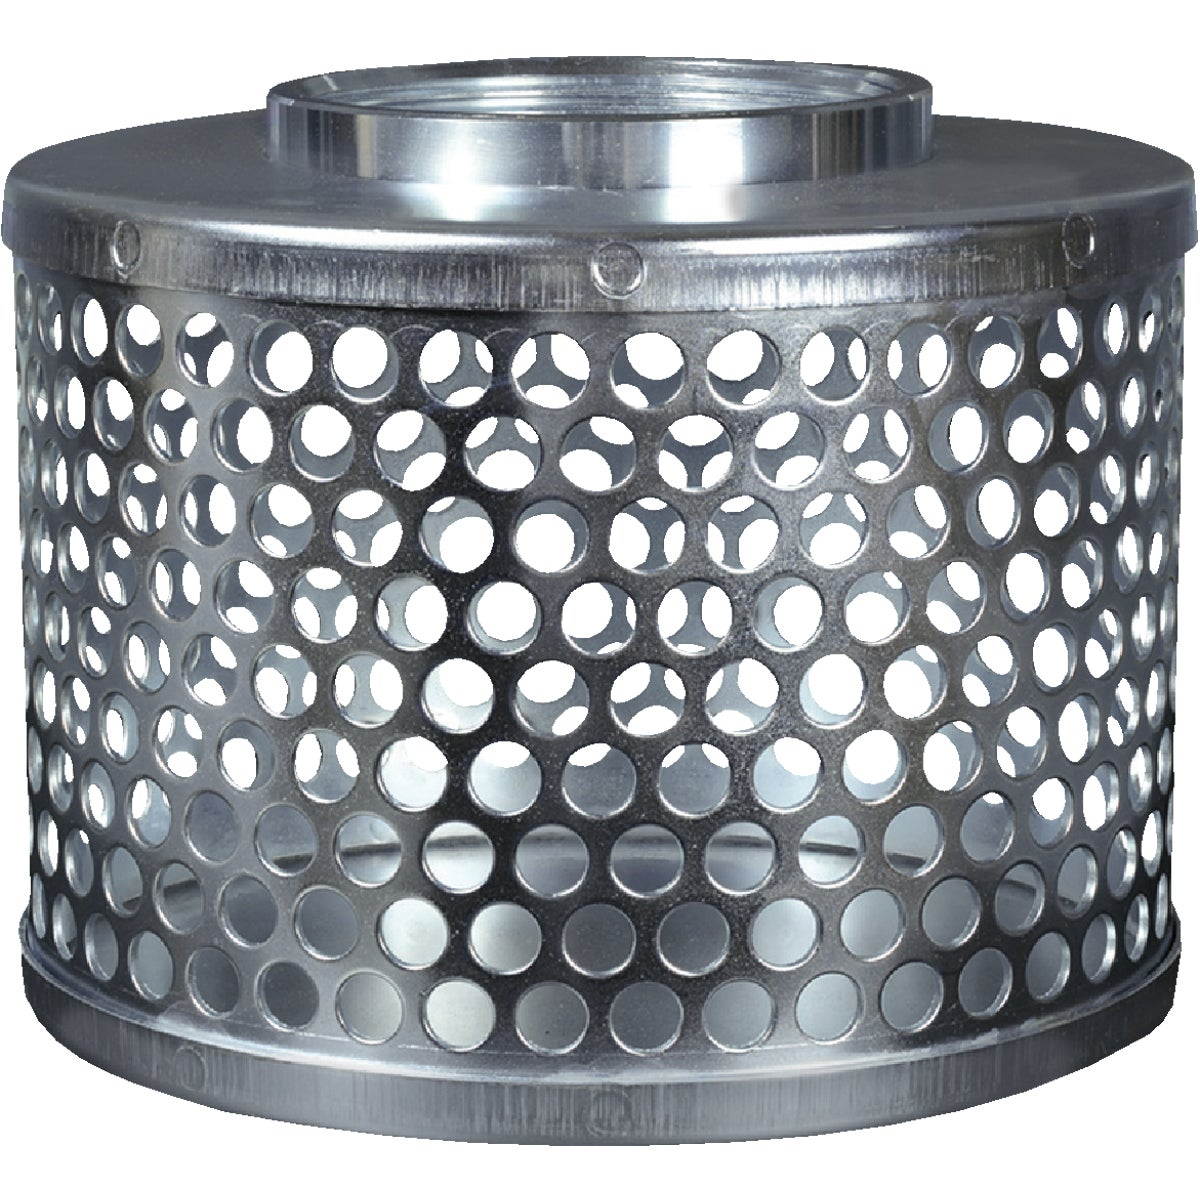 "1-1/2"" PL STEEL STRAINER - 70000008 by Apache Hose Belting"